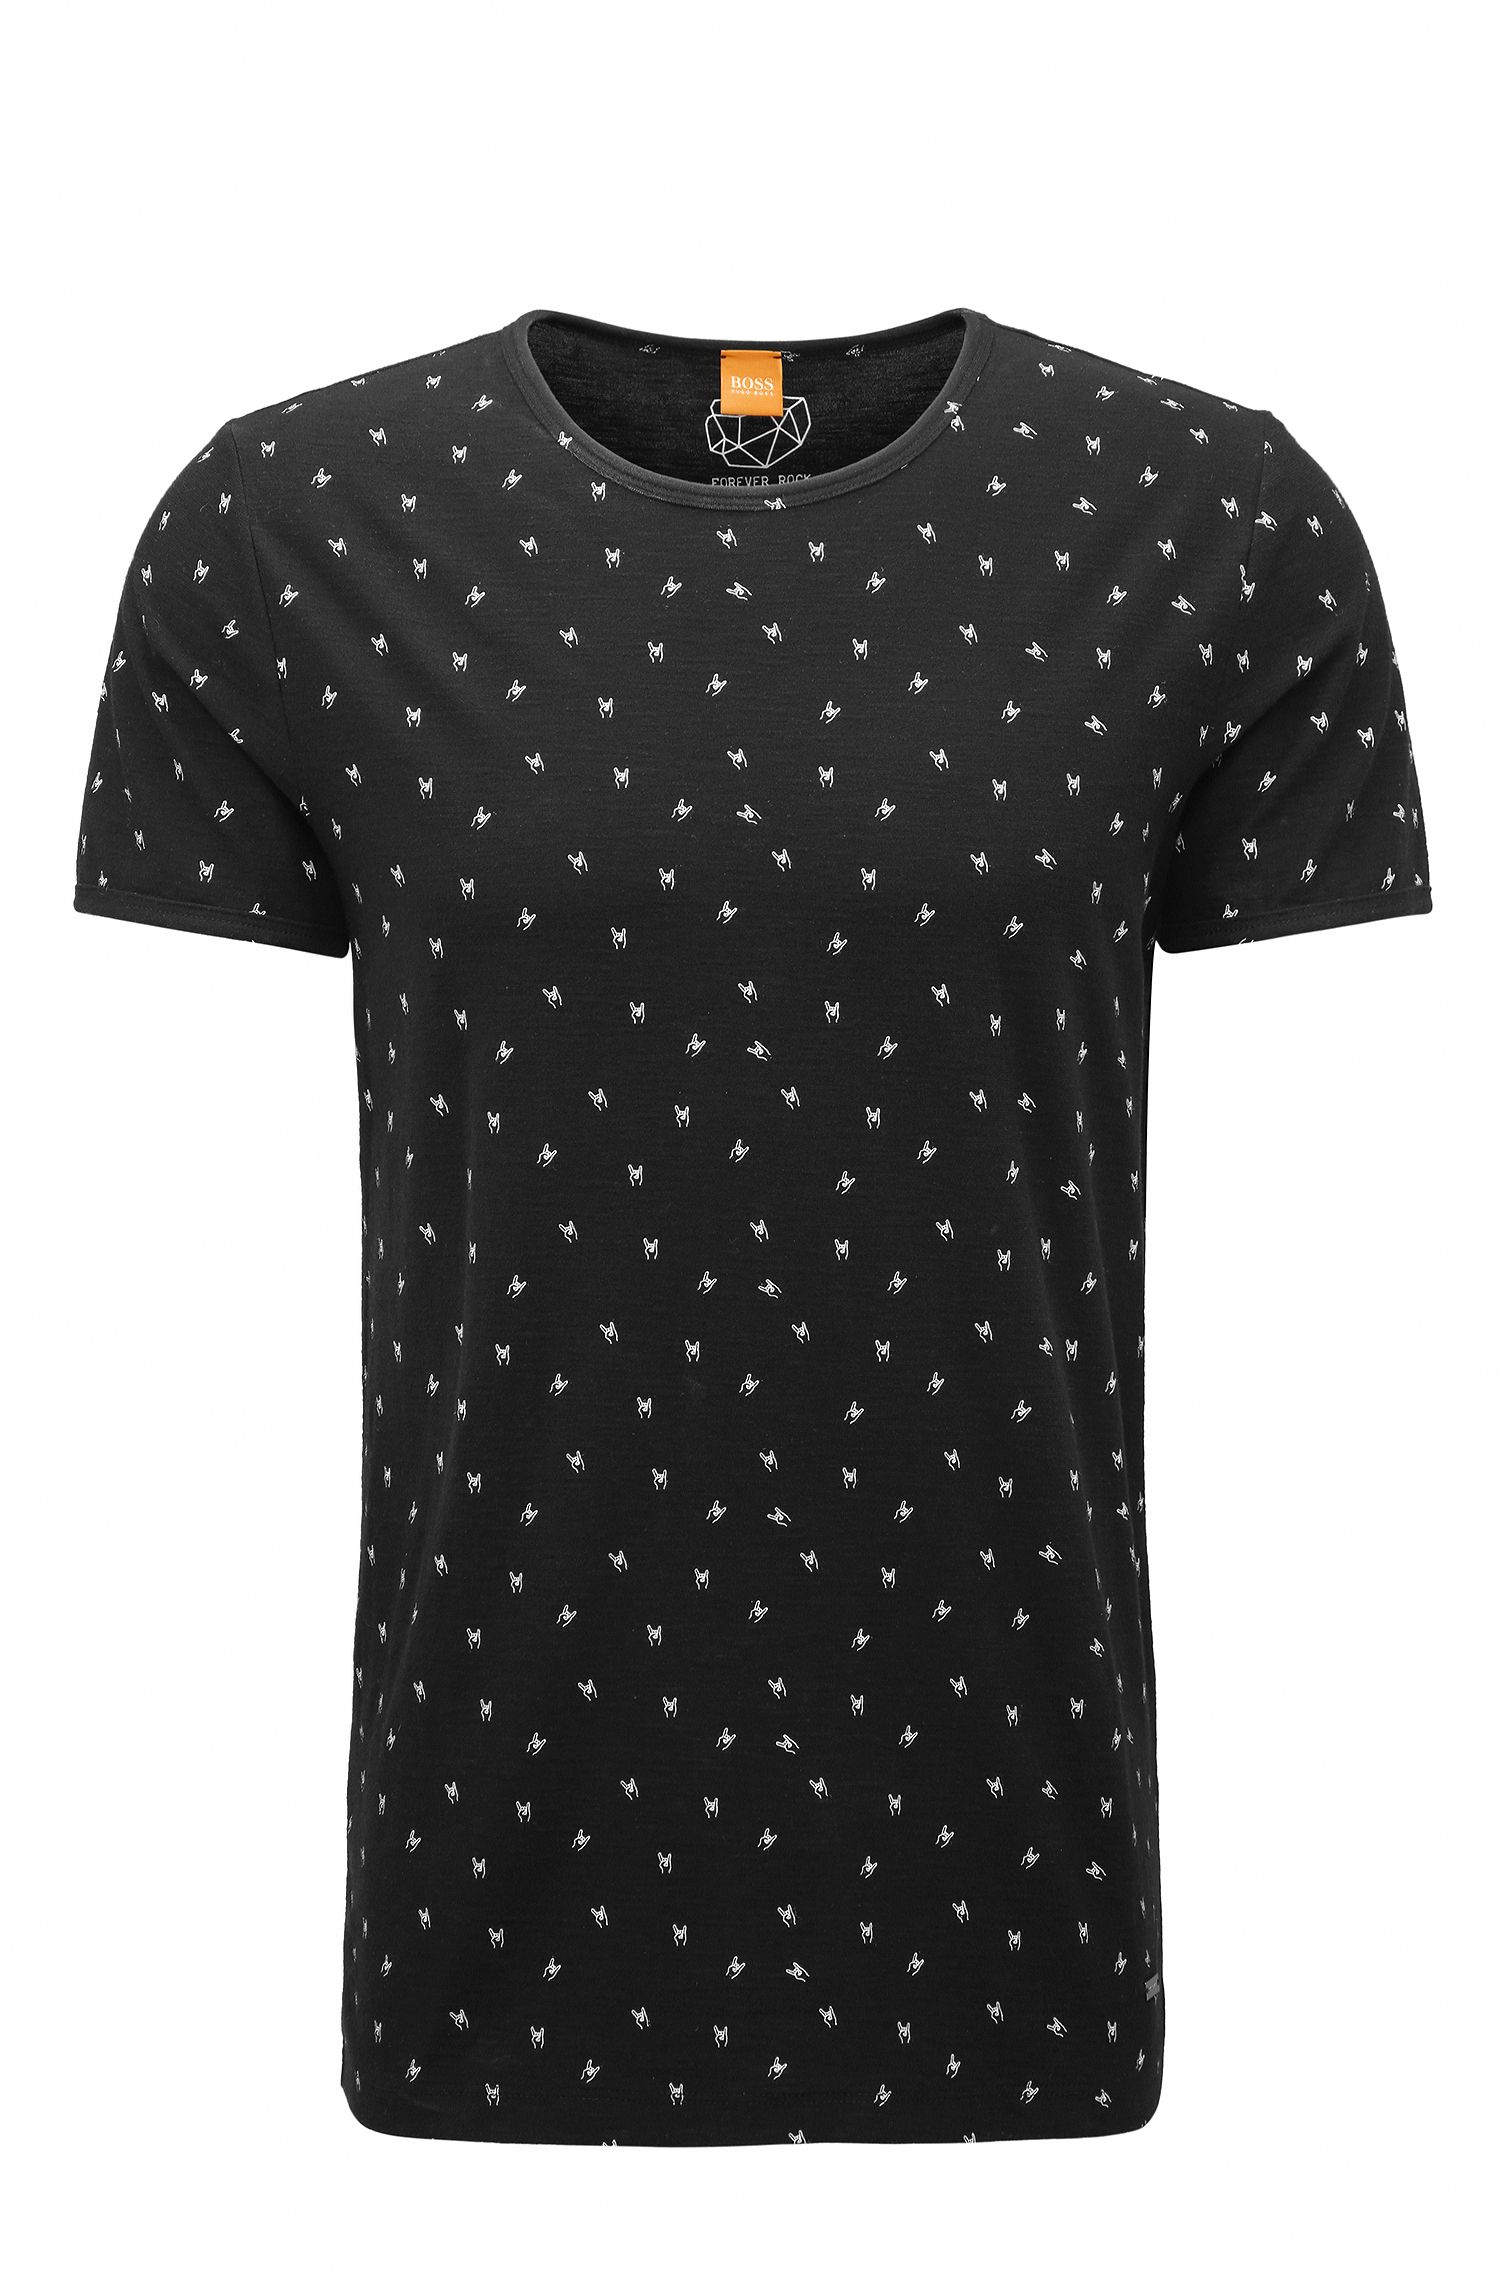 Printed Slub Jersey T-Shirt | Thoughts